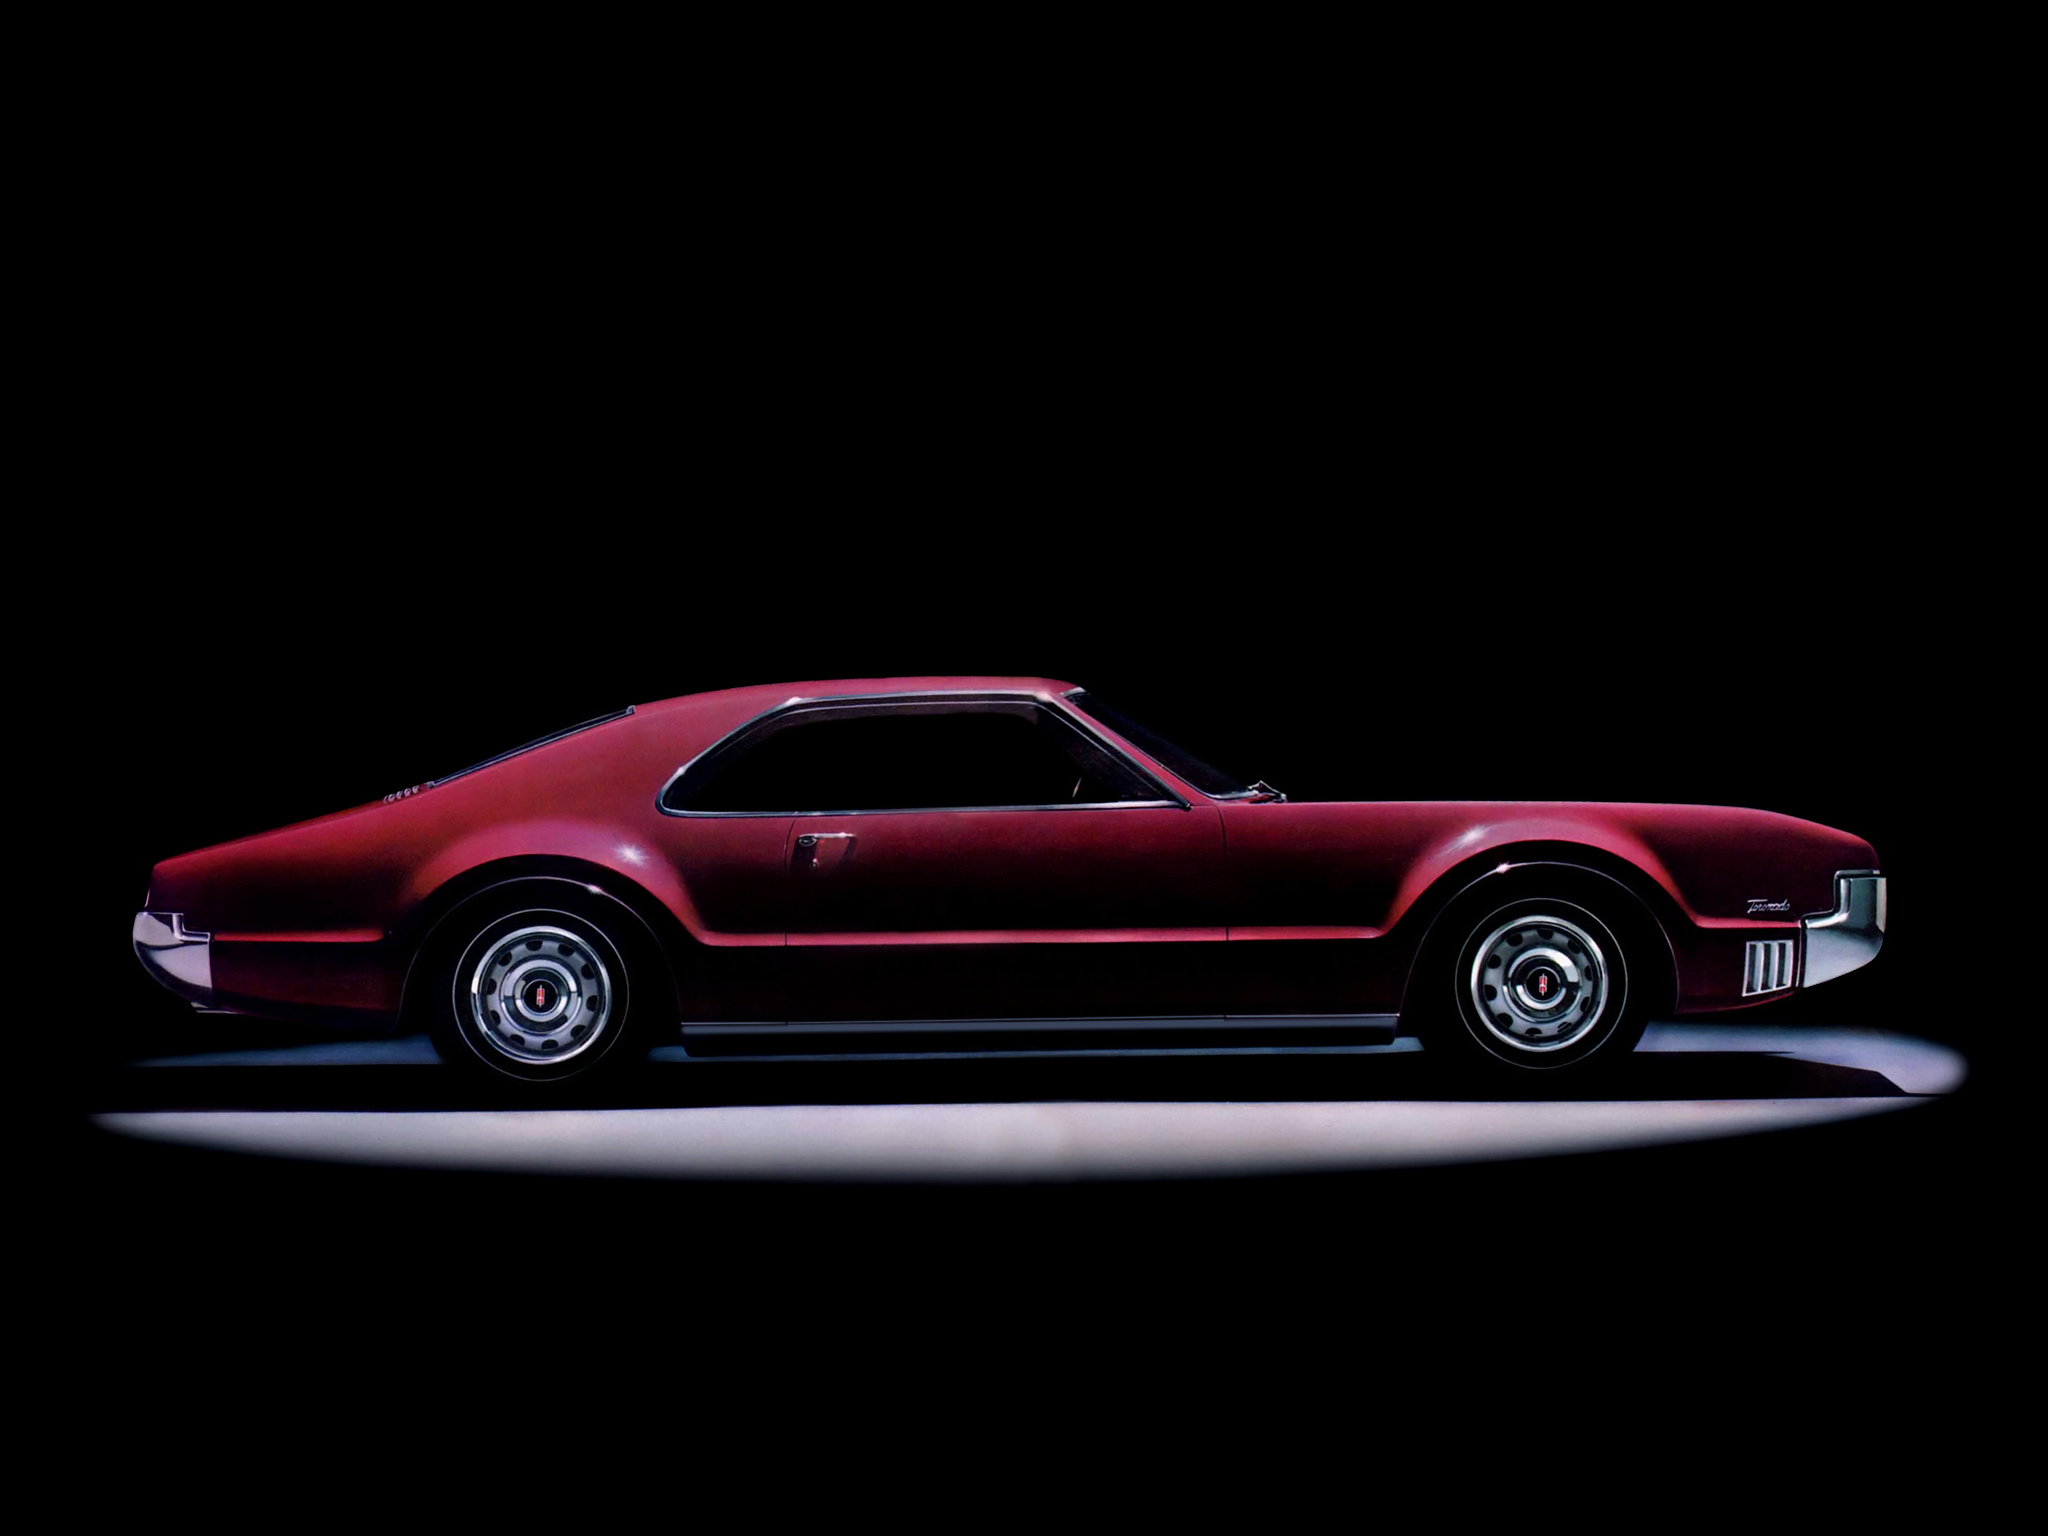 2048x1536 - Oldsmobile Wallpapers 10